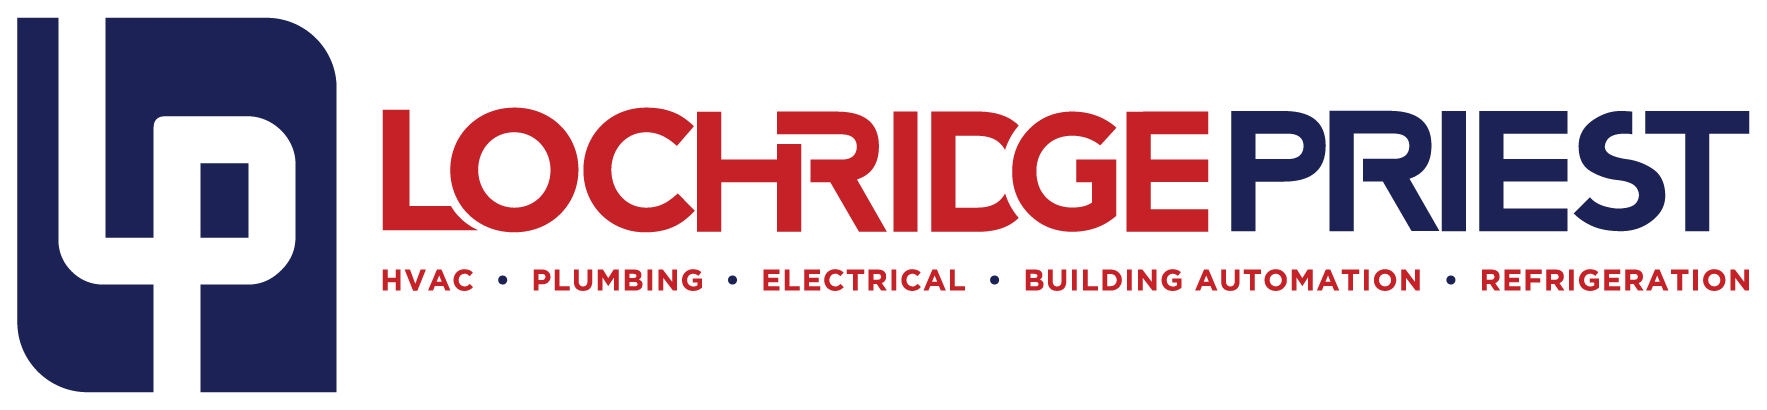 Heating, AC and Plumbing Services | Lochridge Priest